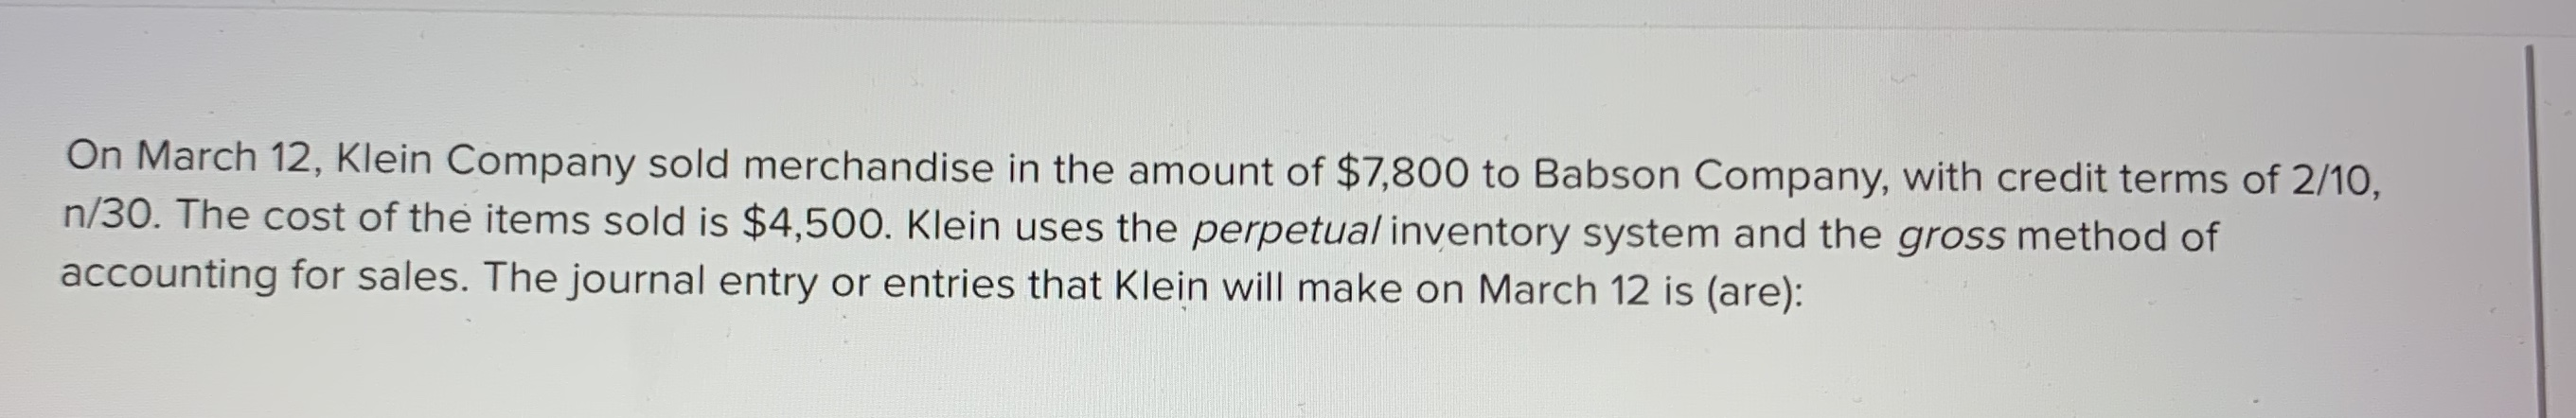 On March 12, Klein Company sold merchandise in the amount of $7,800 to Babson Company, with credit terms of 2/10, n/30. The cost of the items sold is $4,500. Klein uses the perpetual inventory system and the gross method of accounting for sales. The journal entry or entries that Klein will make on March 12 is (are):